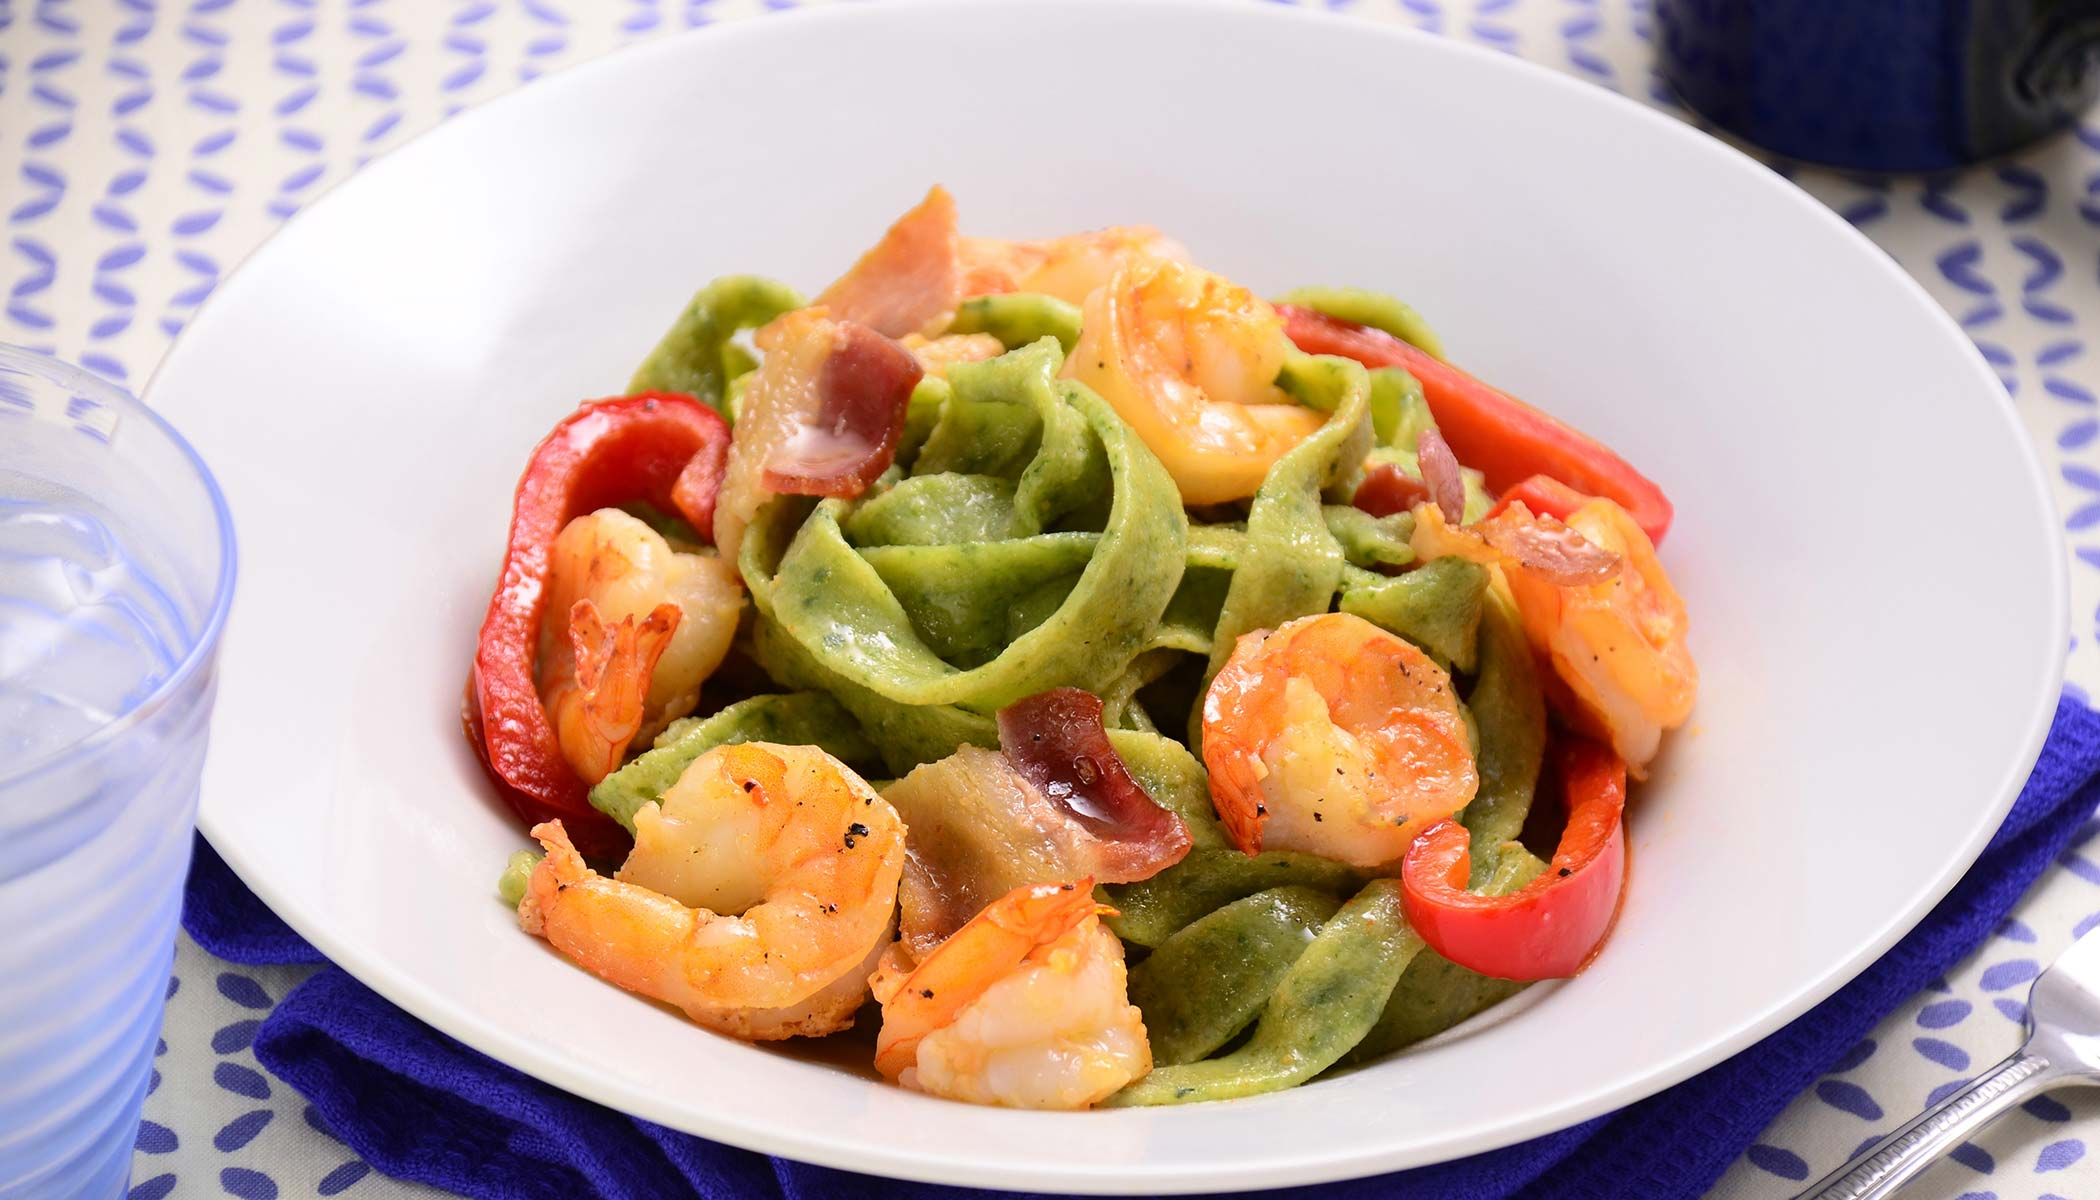 Spinach Fettuccine with Bacon and Shrimp